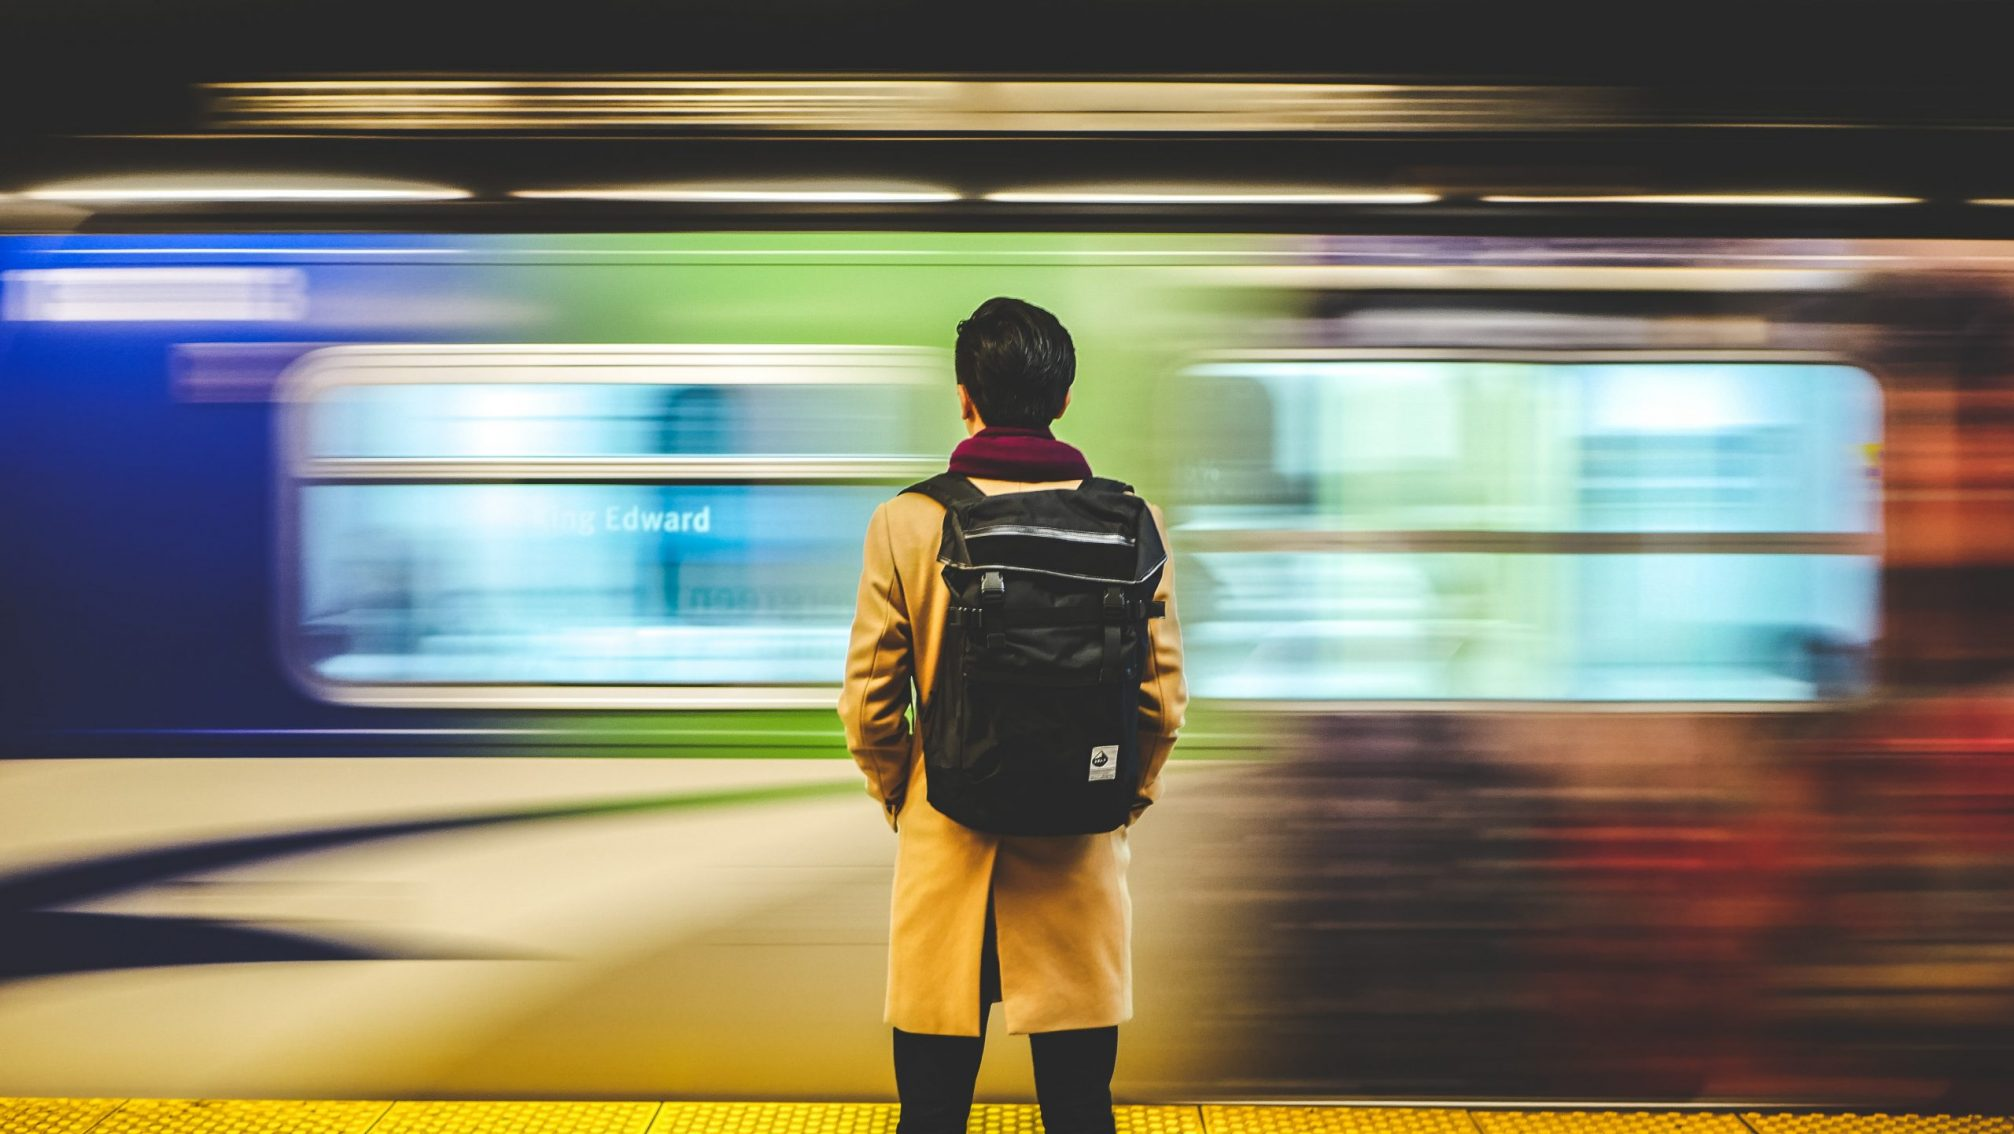 7 Ways to Ride More Safely on Transit During the Coronavirus